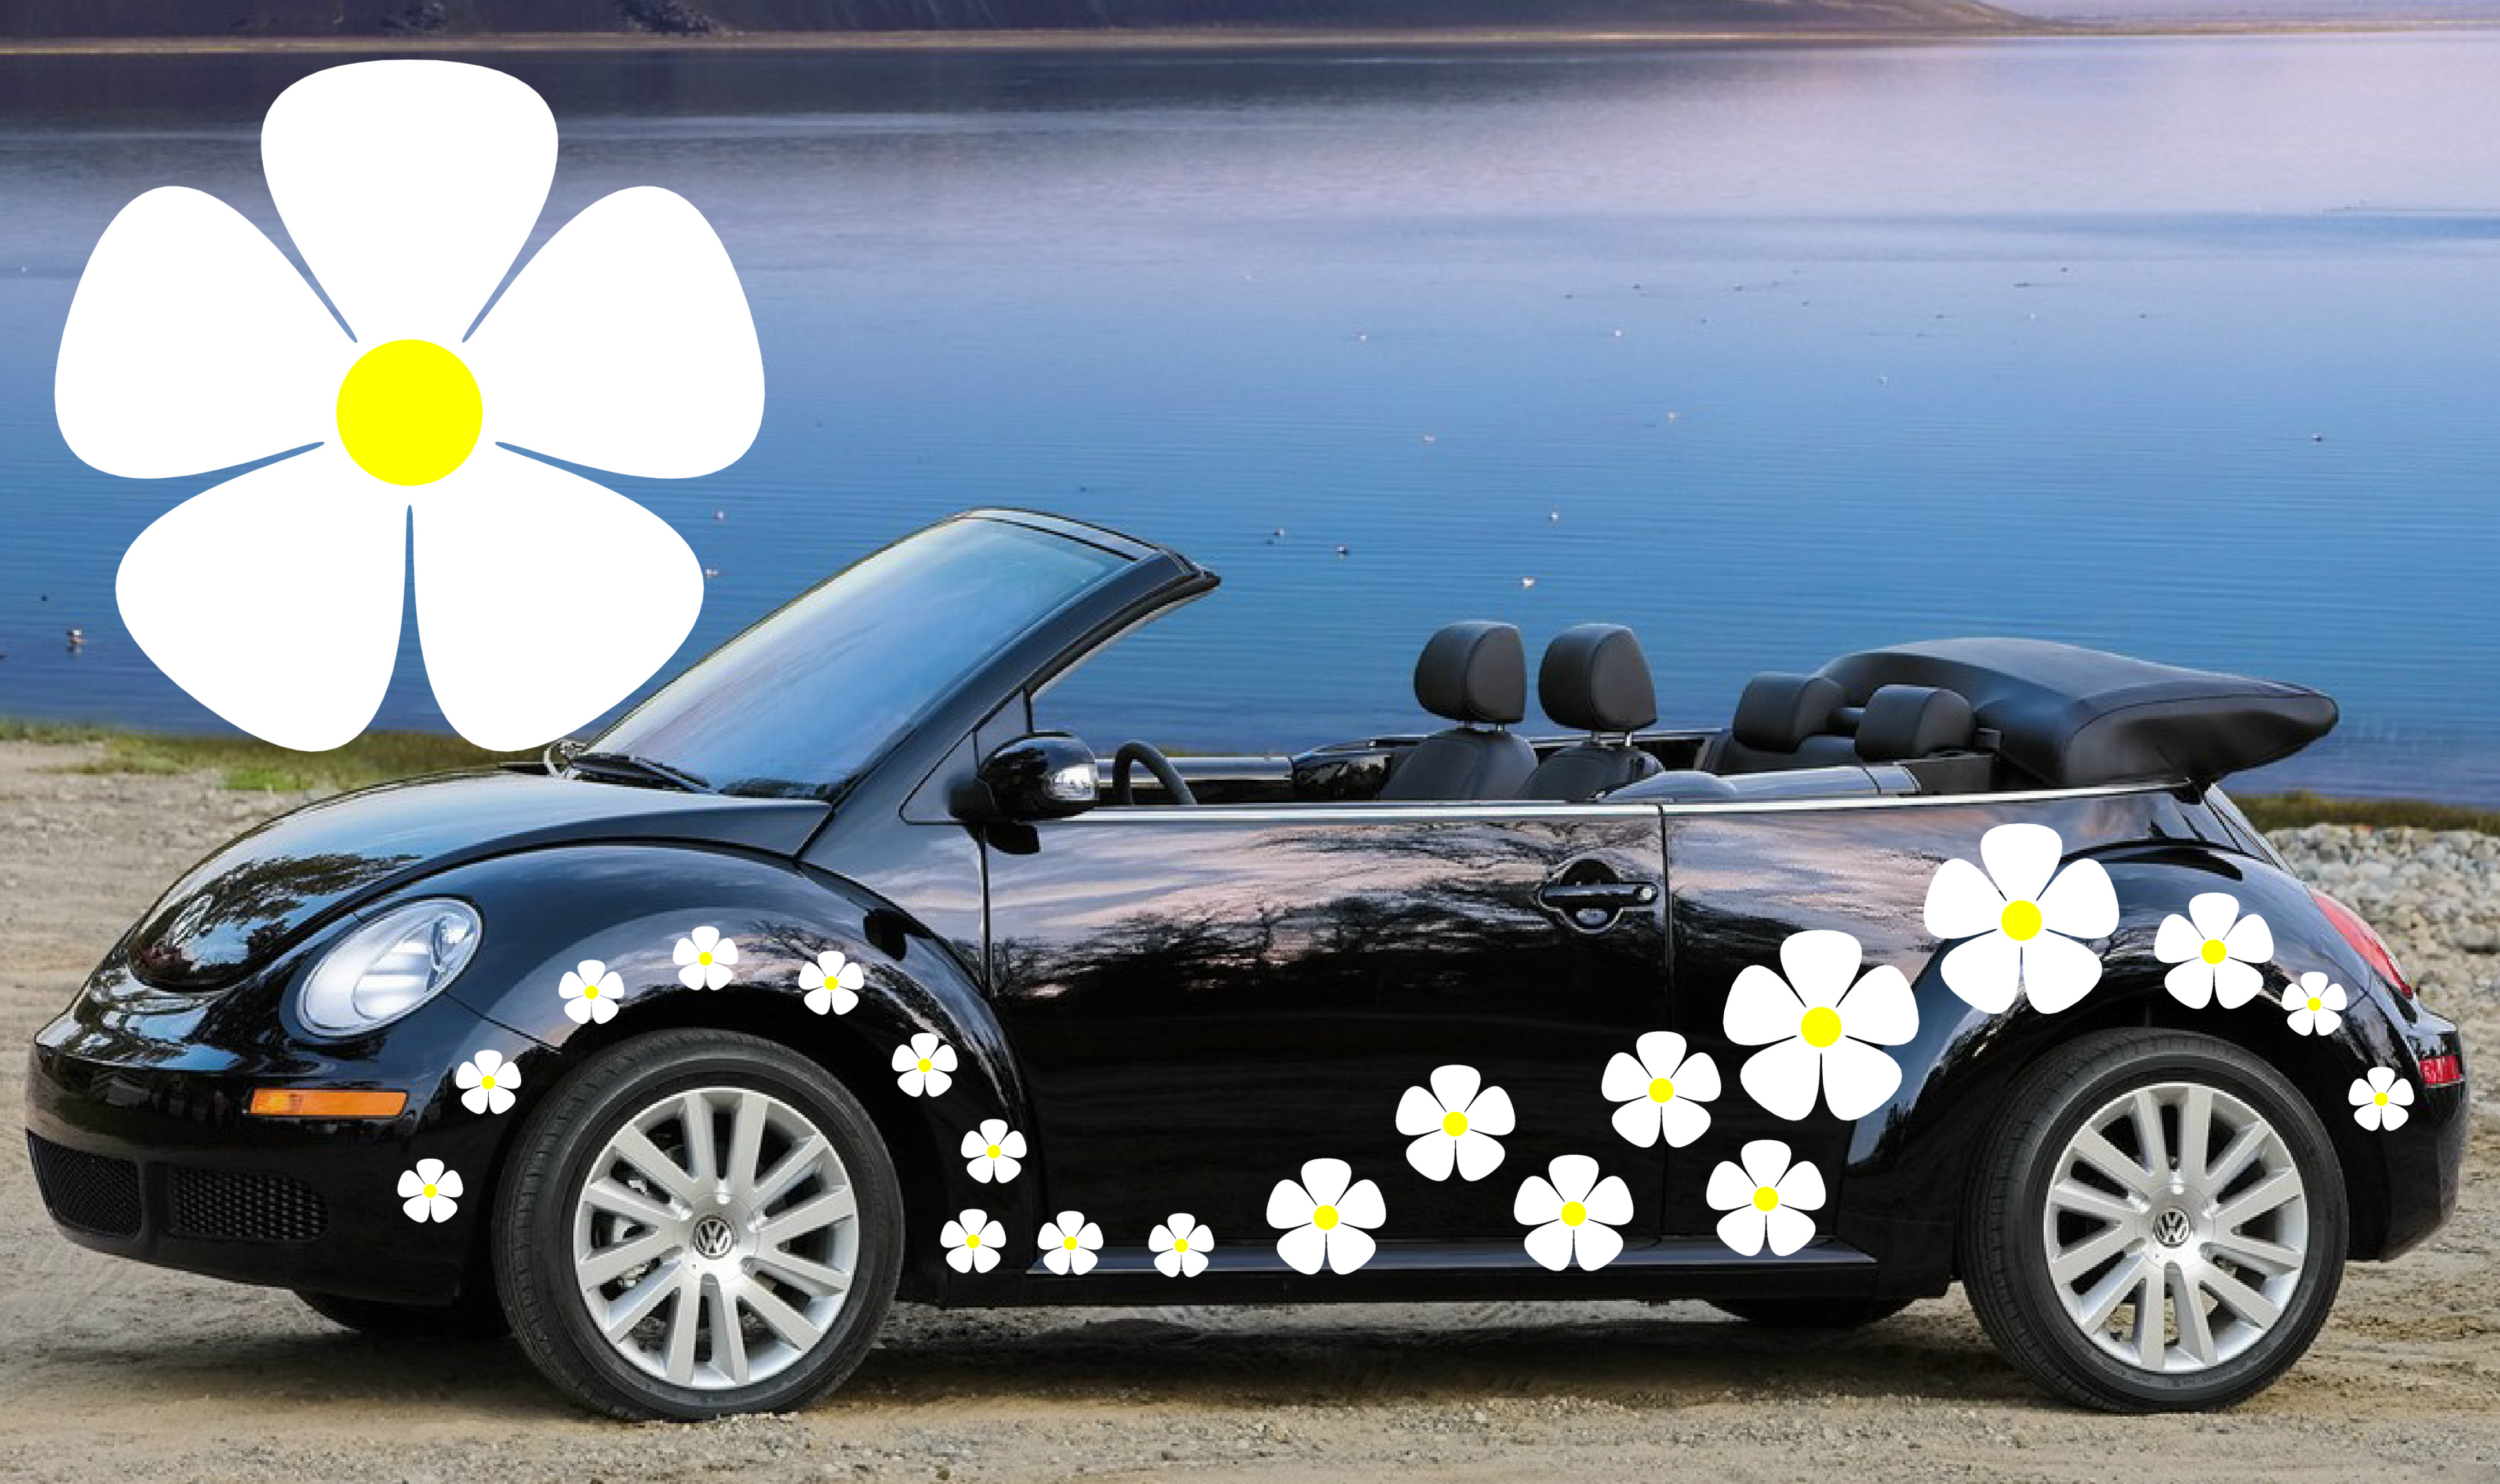 32 white pansy flower car decal stickers